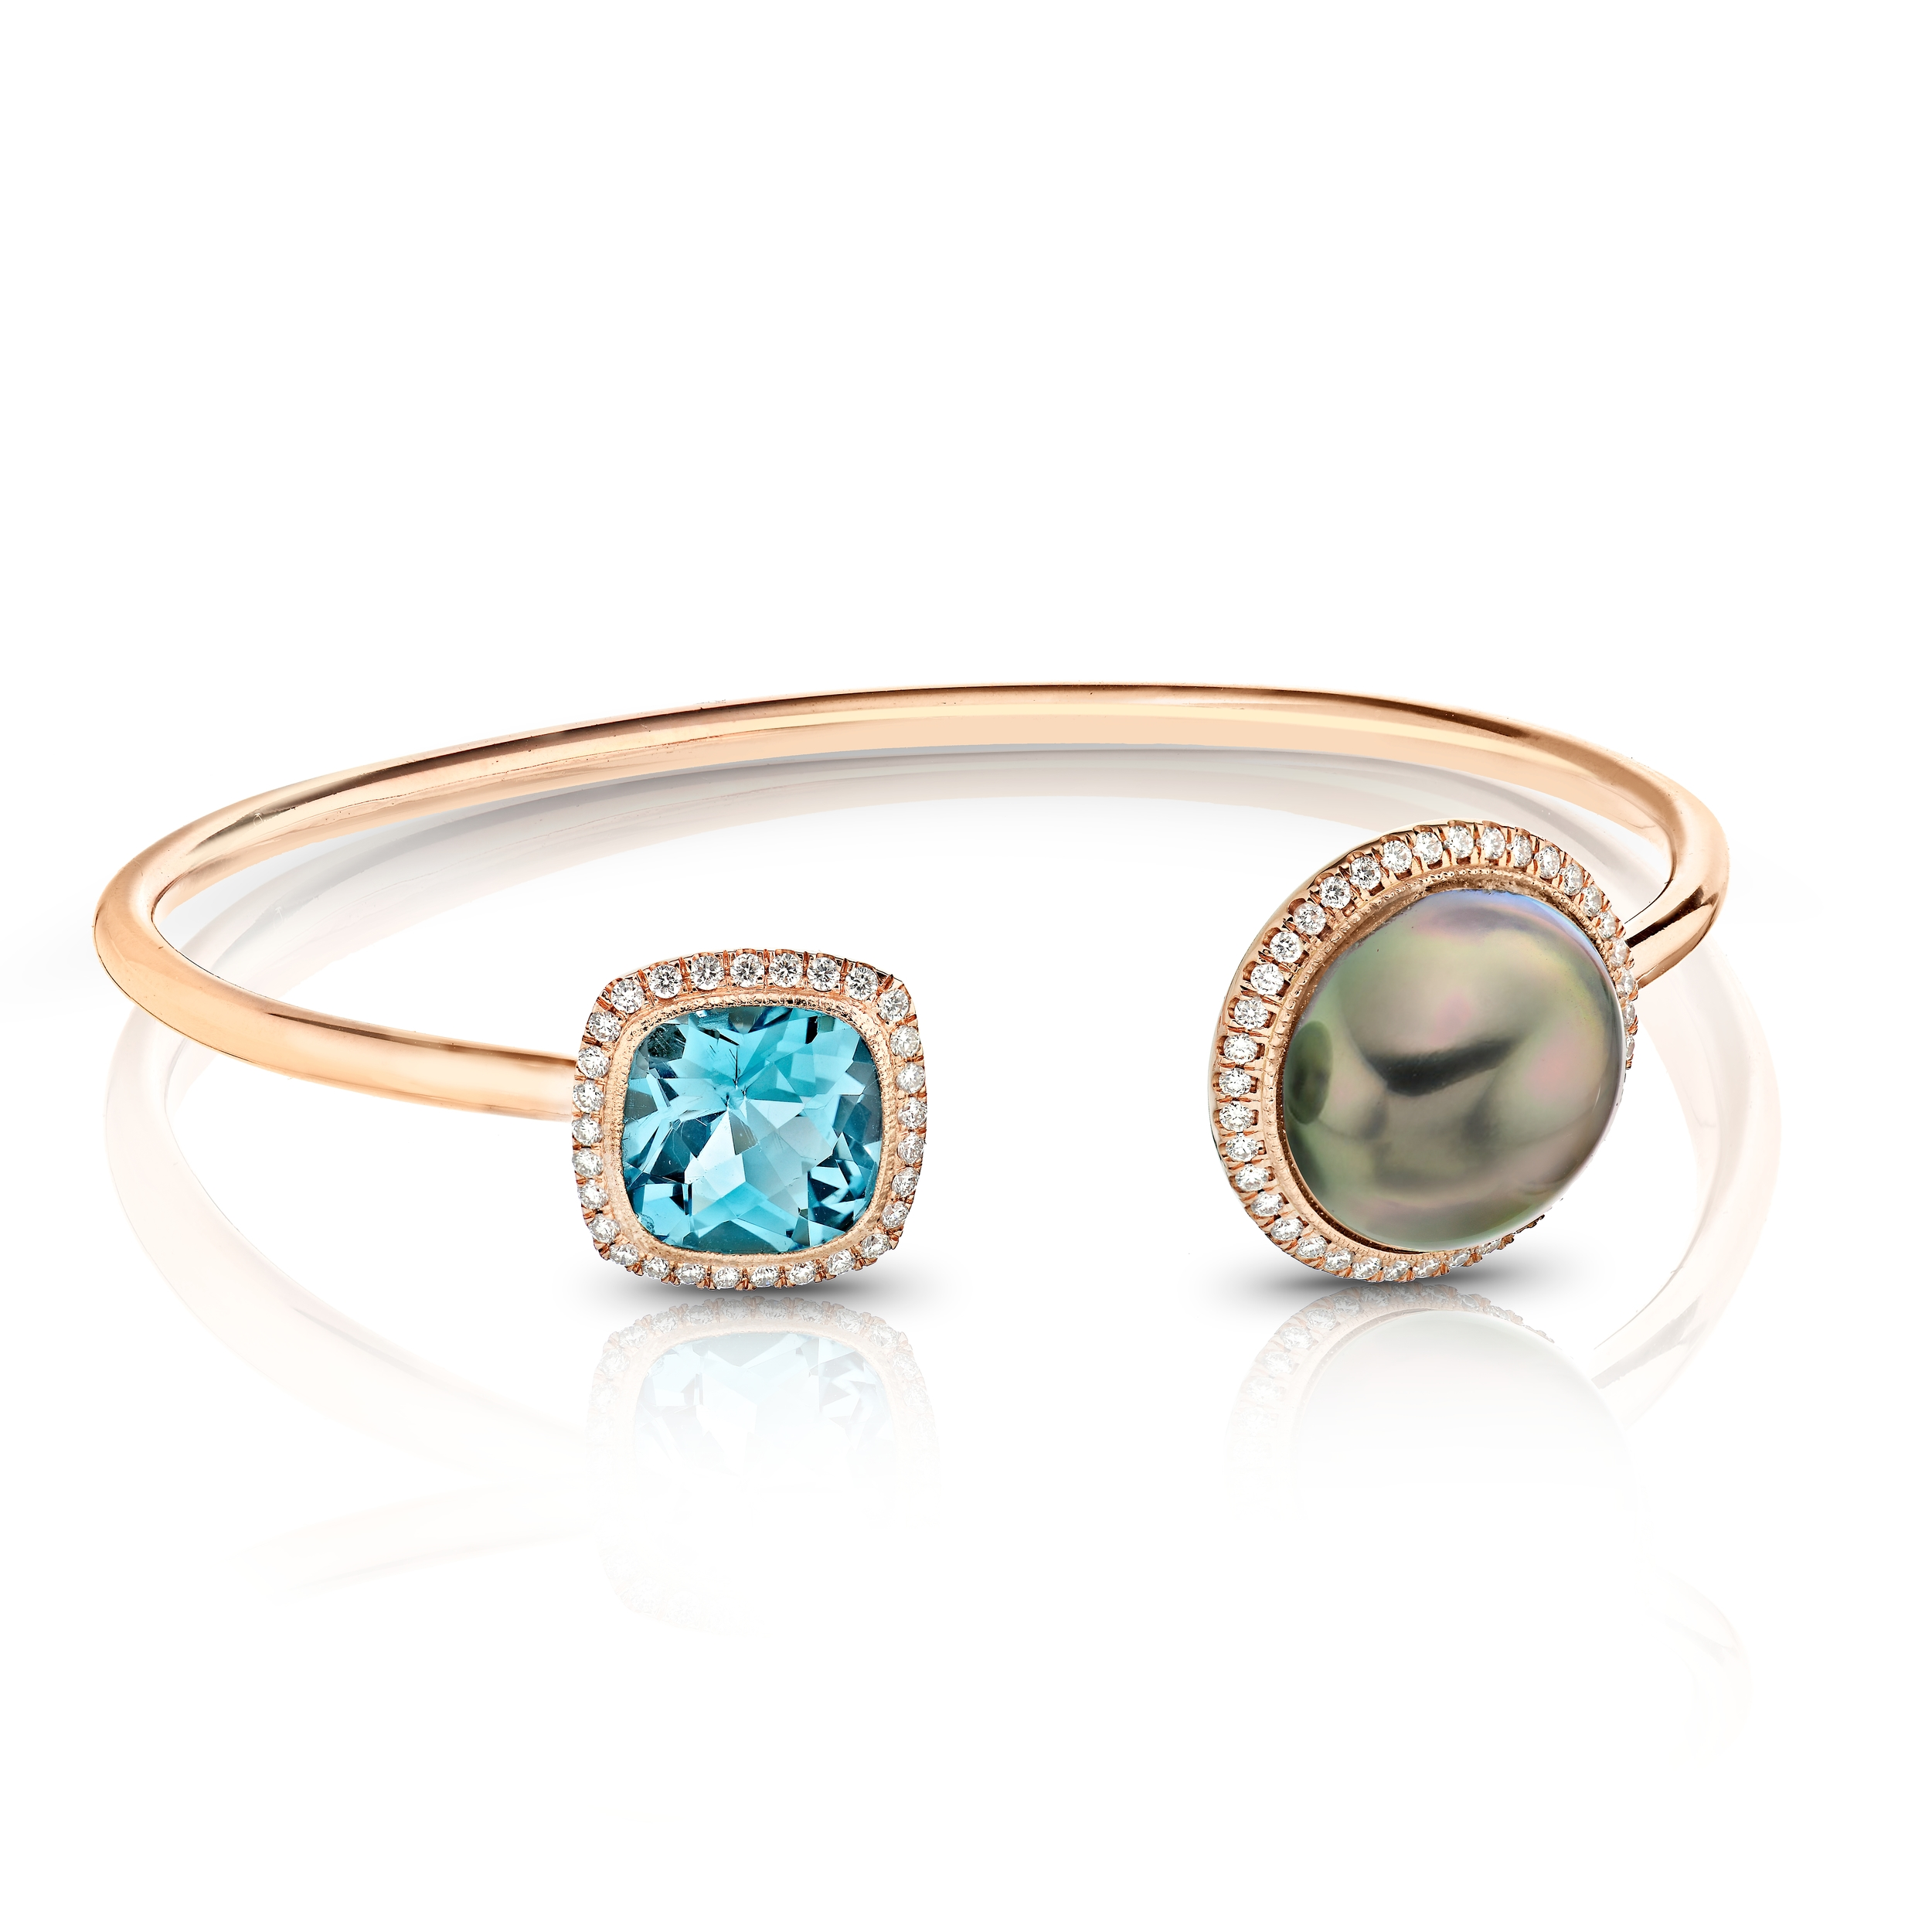 AQUAMARINE AND PEACOCK 12mm MABE PEARL OPEN BRACELET SET WITH COLORLESS DIAMOND PAVE IN 18K ROSE GOLD, 4.44 CTW